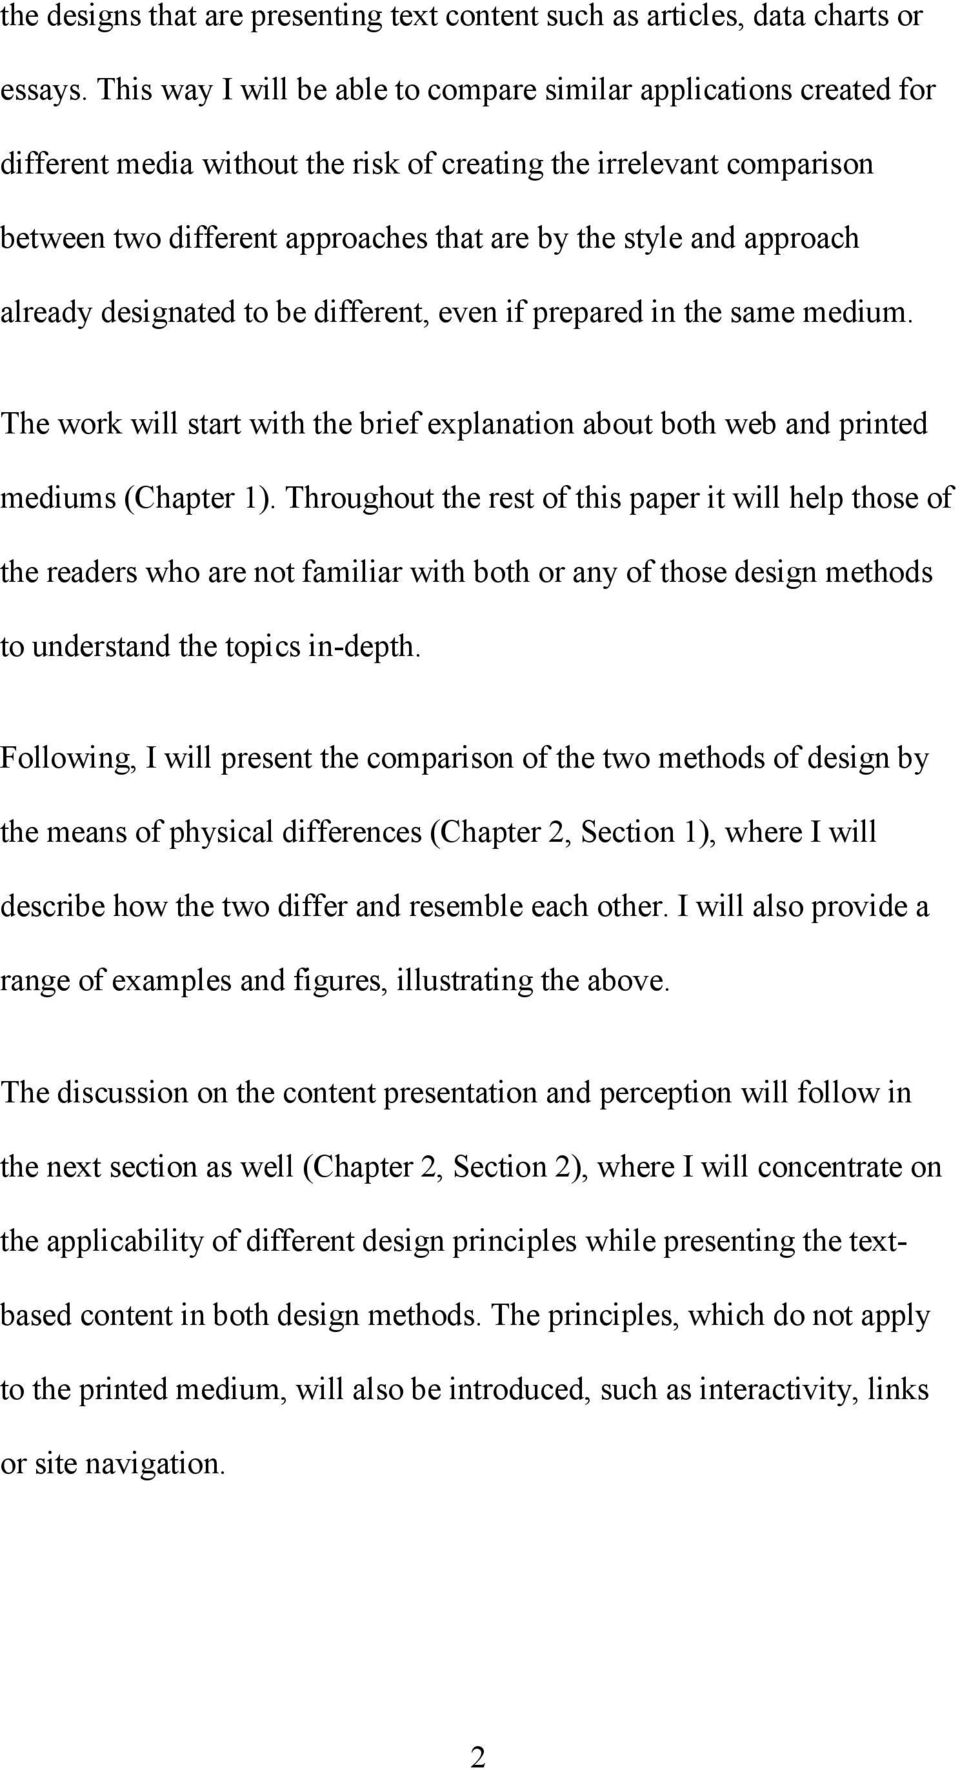 approach already designated to be different, even if prepared in the same medium. The work will start with the brief explanation about both web and printed mediums (Chapter 1).